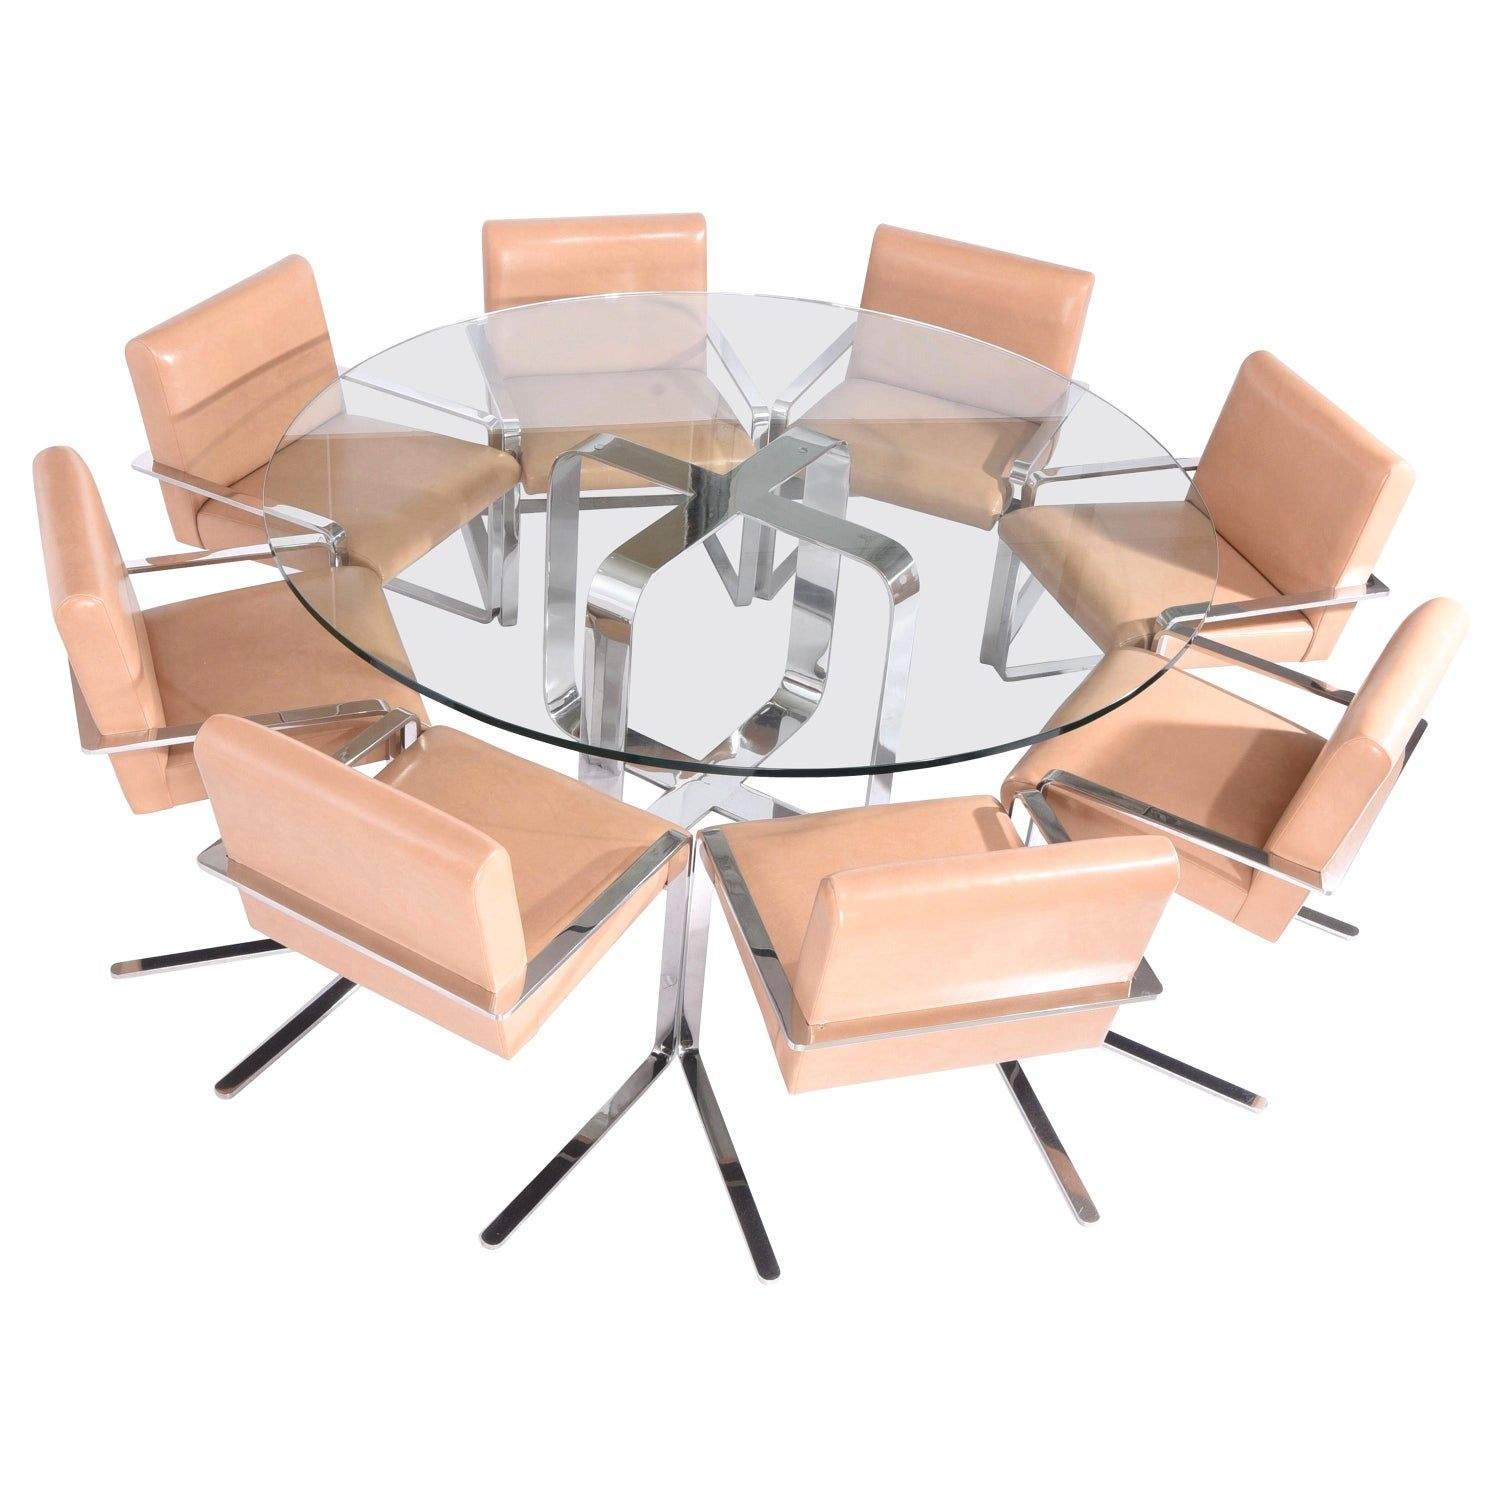 gary gutterman stainless steel dining table and chair set